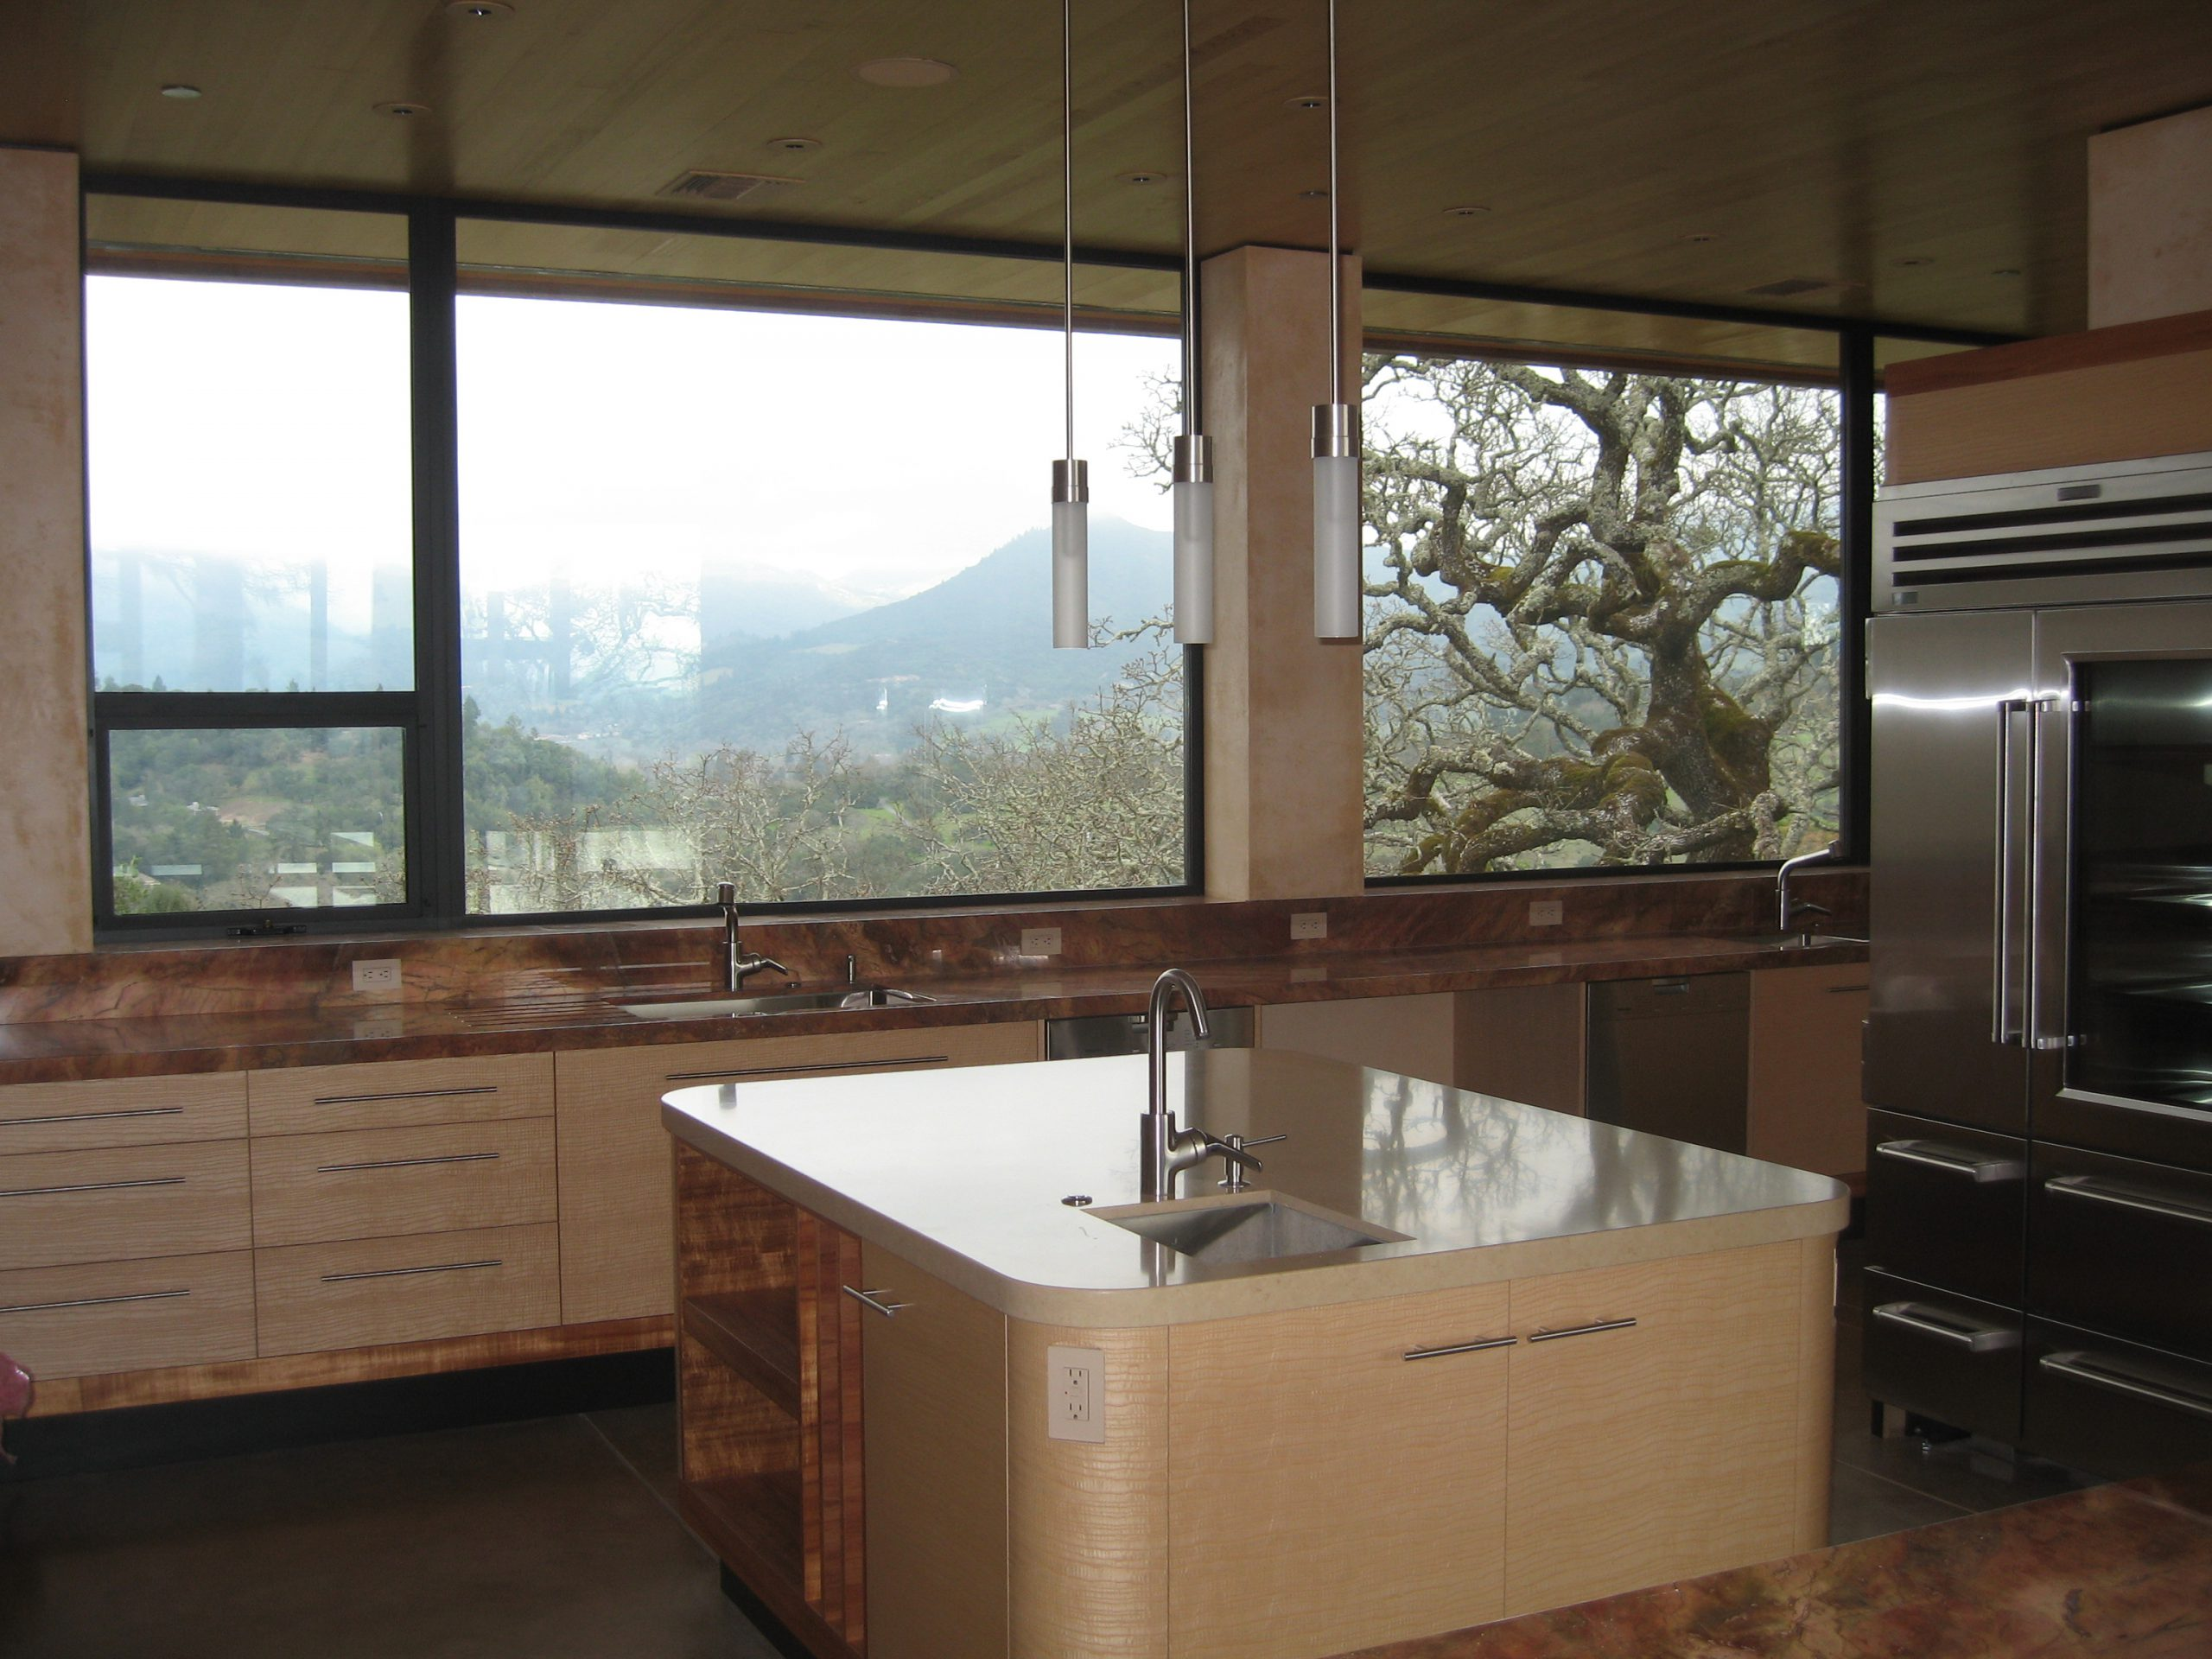 Hire your local marin county glass company and get great service, great prices and on-time production